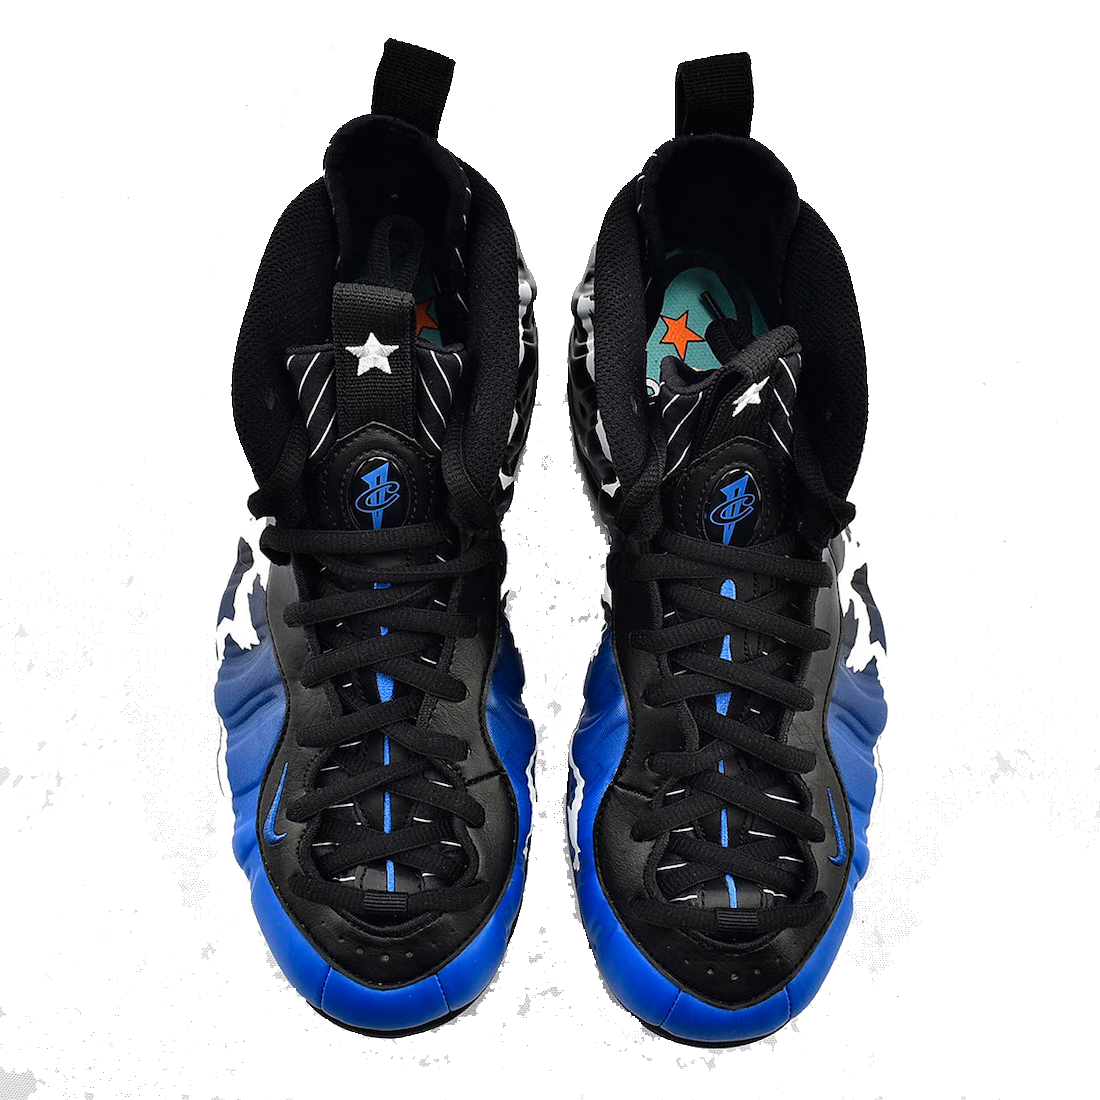 The Gone Fishing Nike Foamposites Finally Have a Release ...